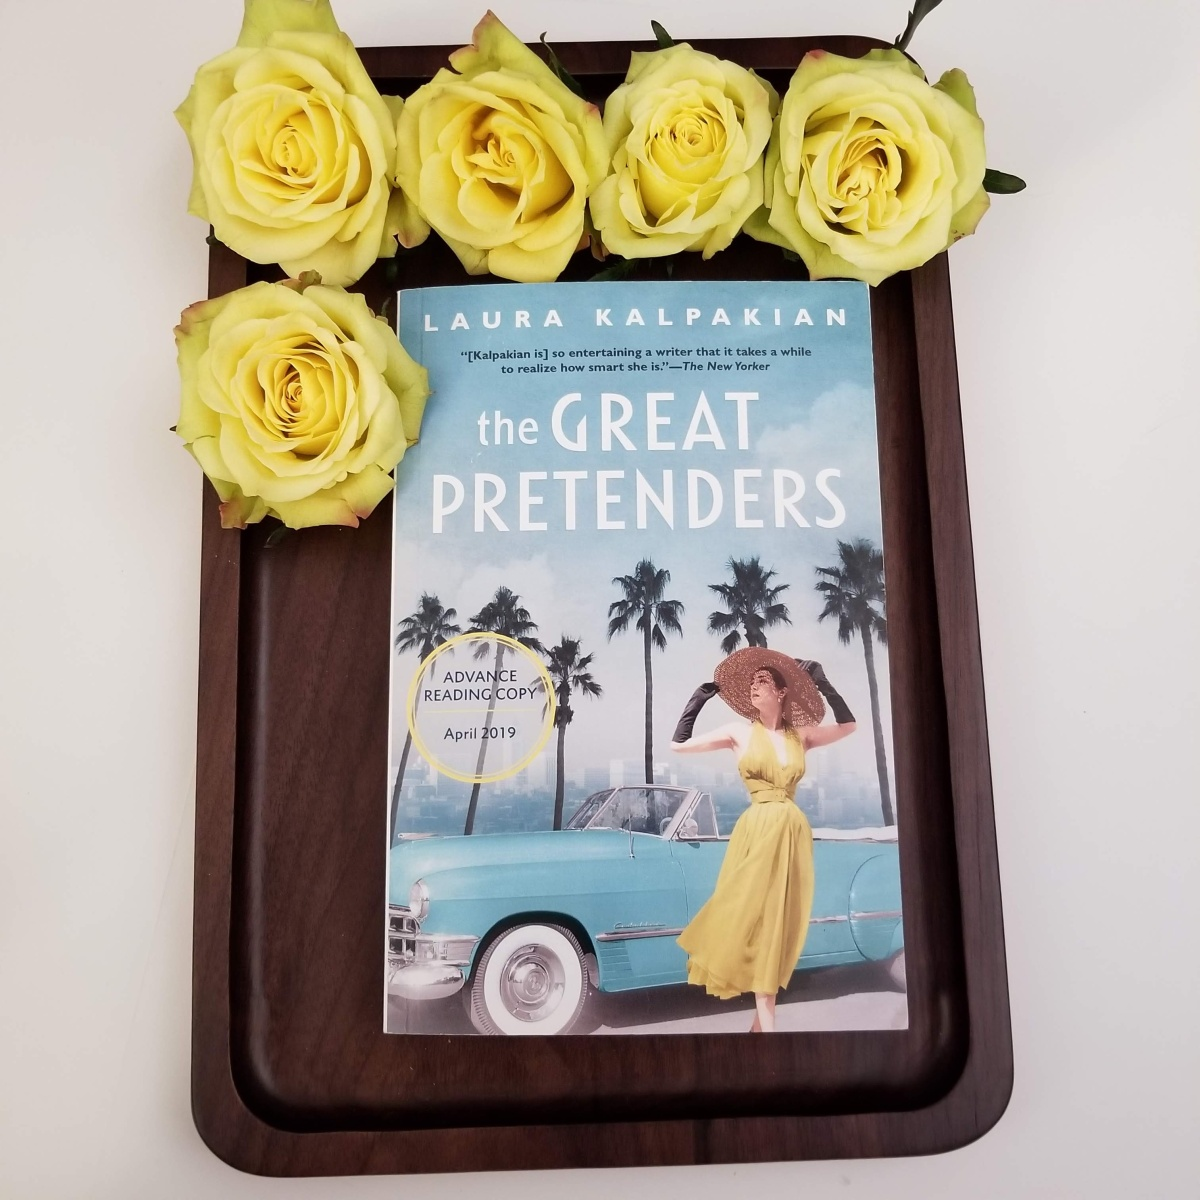 The Great Pretenders by Laura Kalpakian #bookreview #tarheelreader #thrgreatpretenders @laurakalpakian @berkleypub #thegreatpretenders #blogtour #bookgiveaway